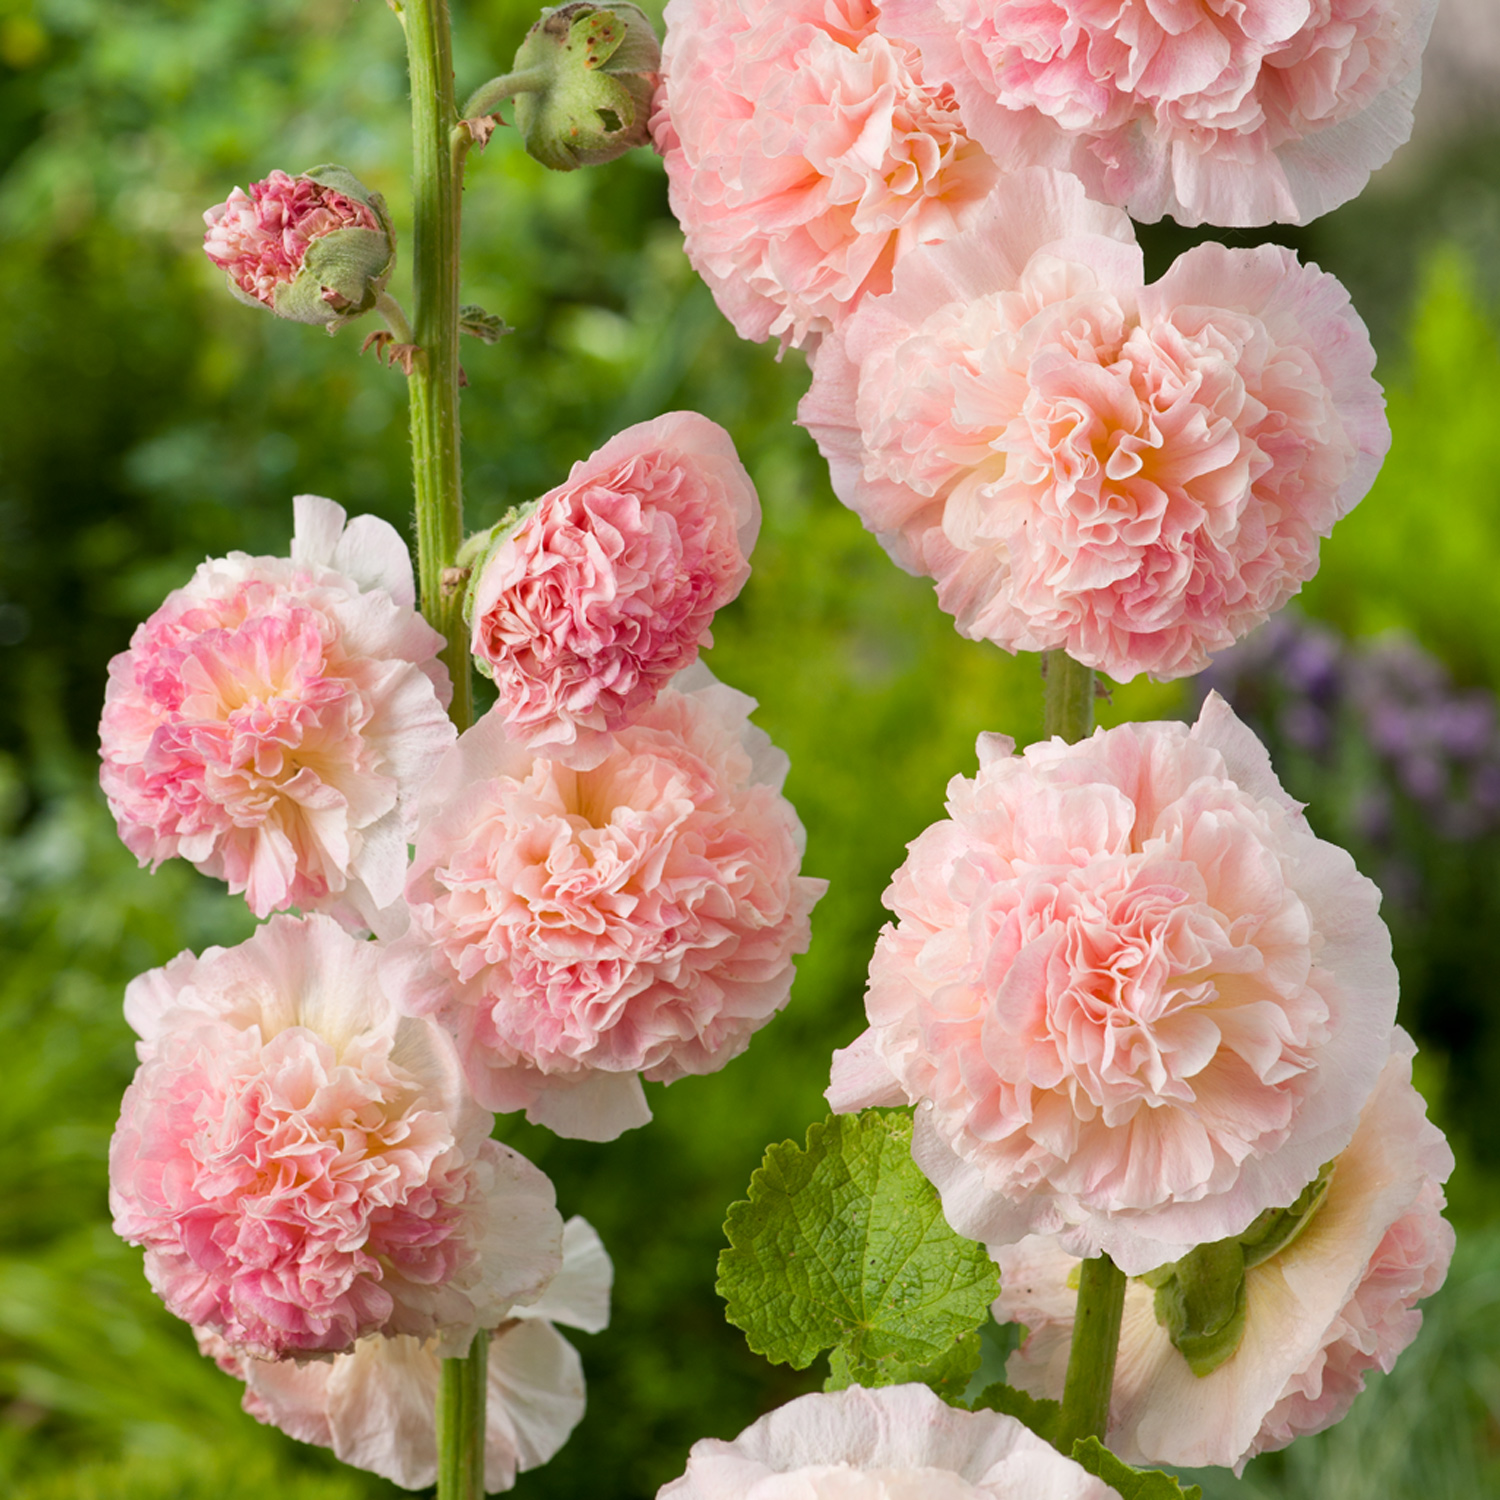 chater's Salmon pink - Description:Height: 8 ft. Spread: 2ft.Zone: 3-9